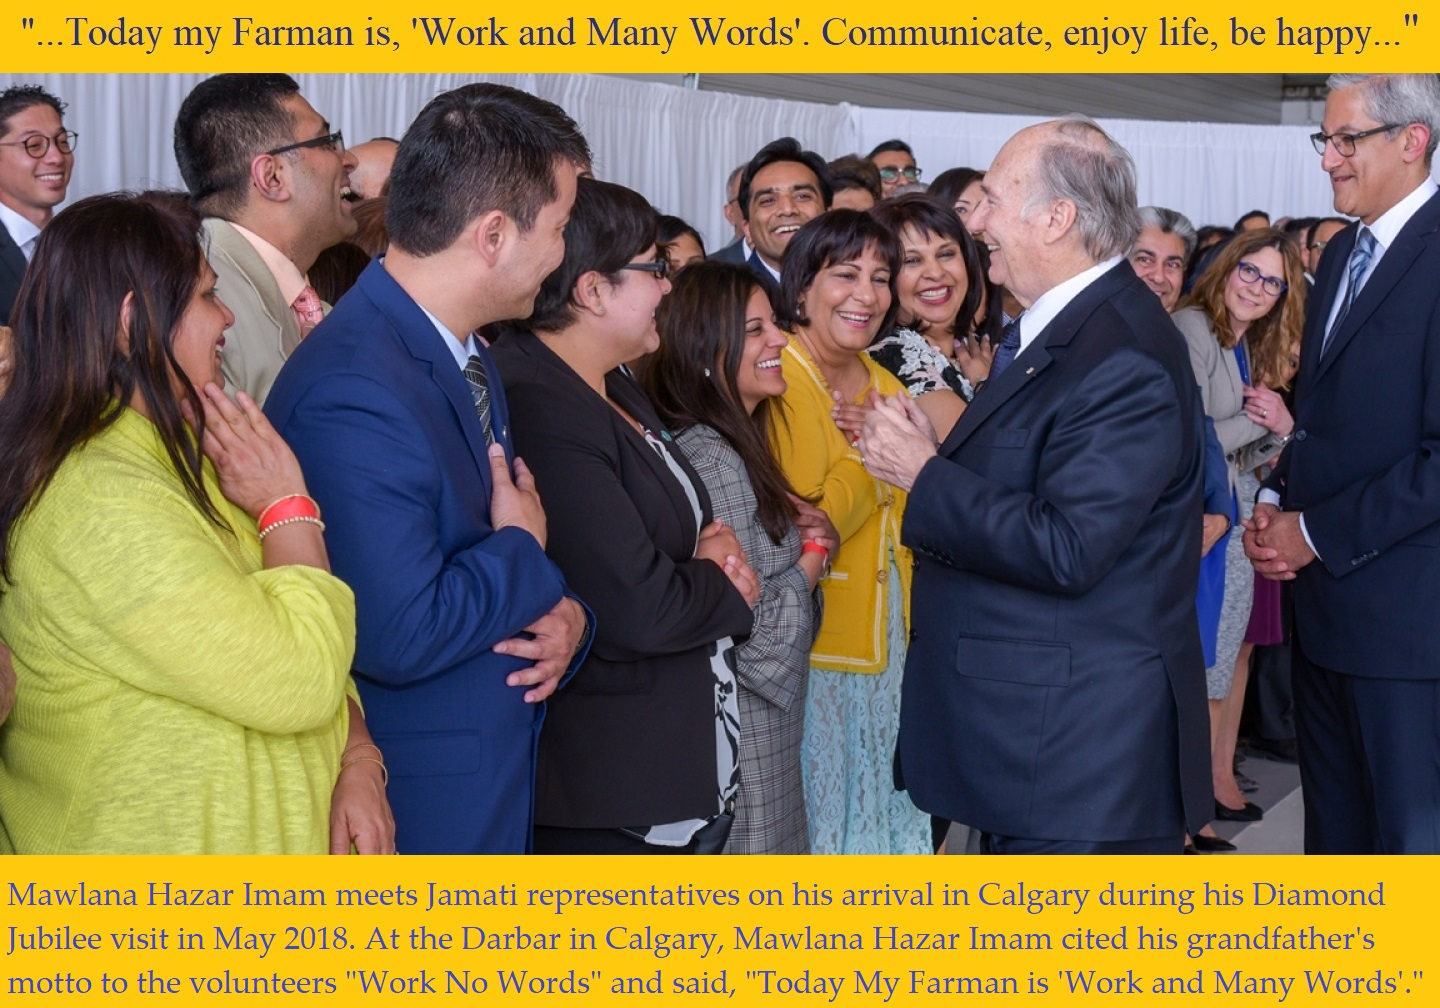 "The Volunteer's Traditional Motto ""Work No Words"" needs a revision to ""Work and Many Words"" in light of Mawlana Hazar Imam's Diamond Jubilee Farman"